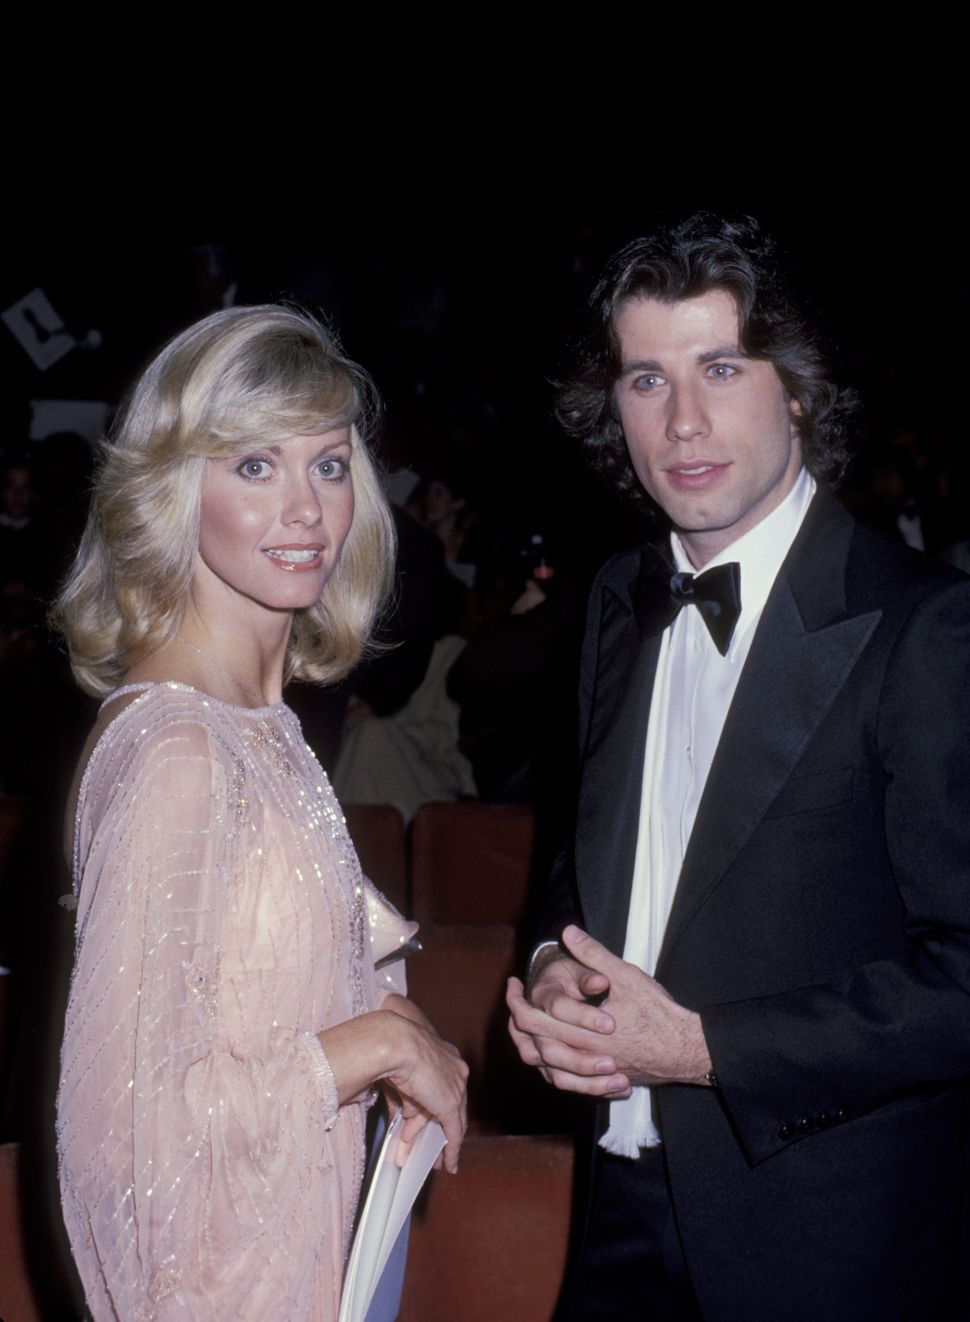 Olivia Newton-John and John Travolta during the 50th annual Academy Awards in 1978.